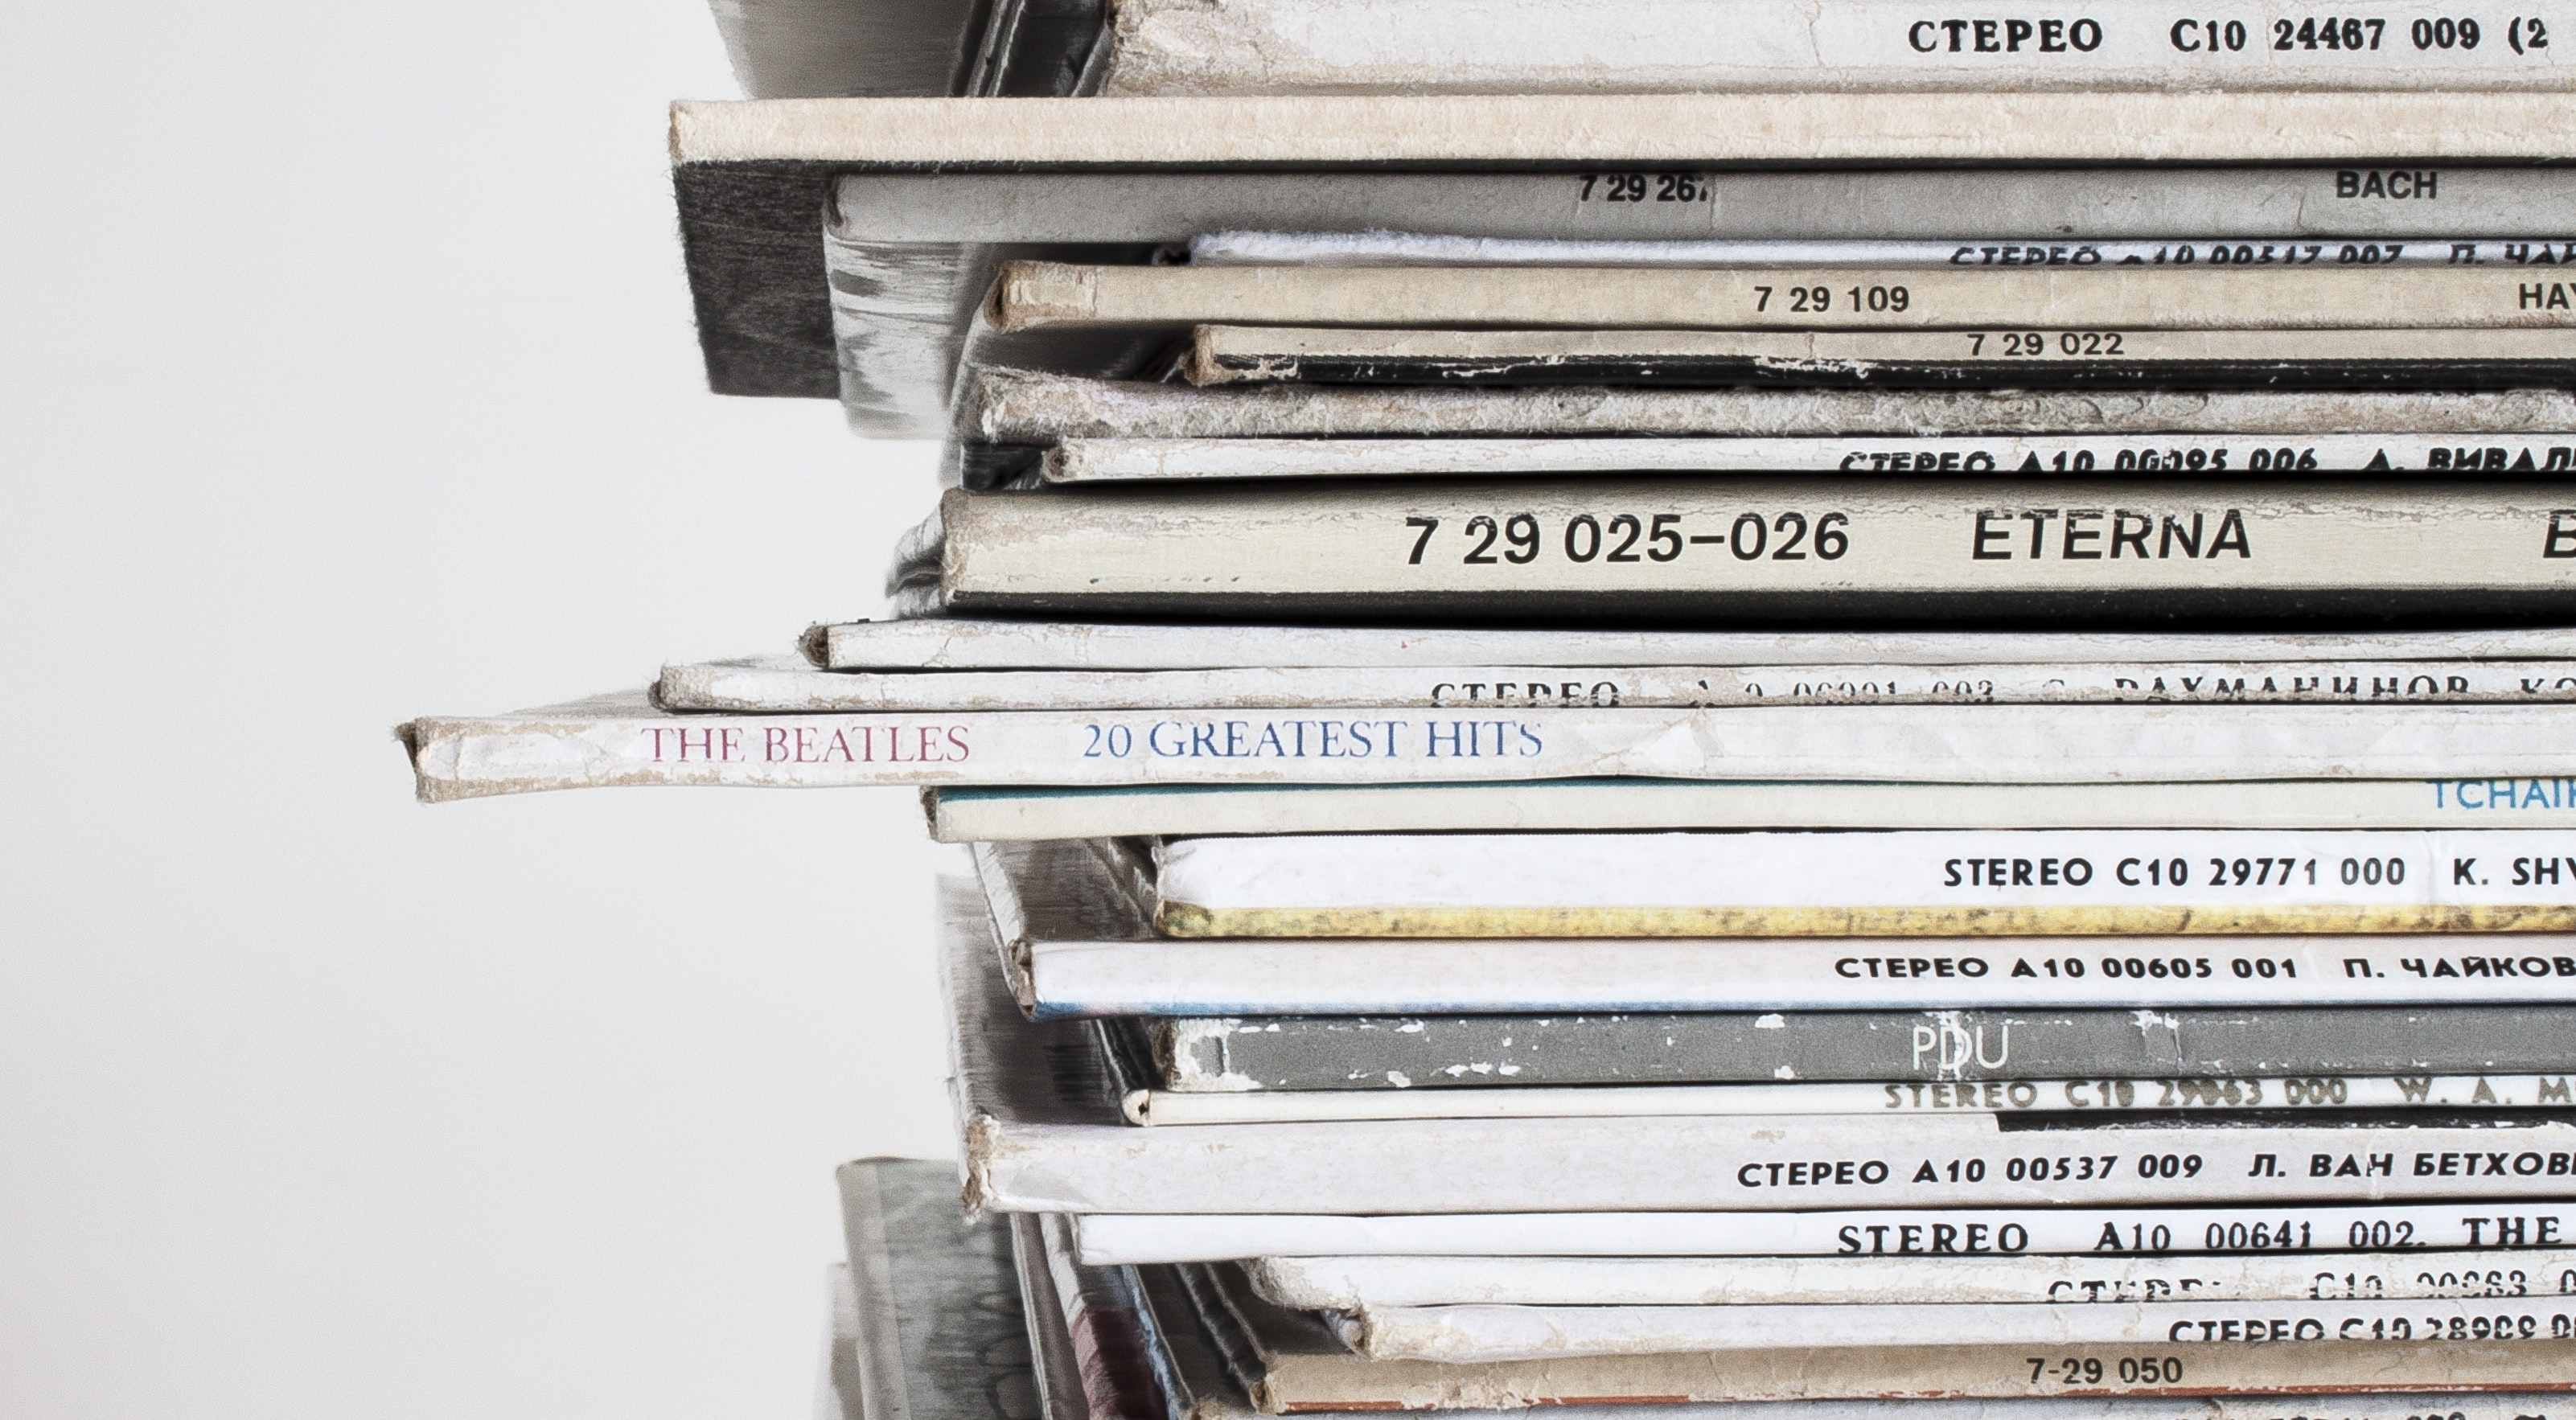 A close-up of a stack of old vinyl records